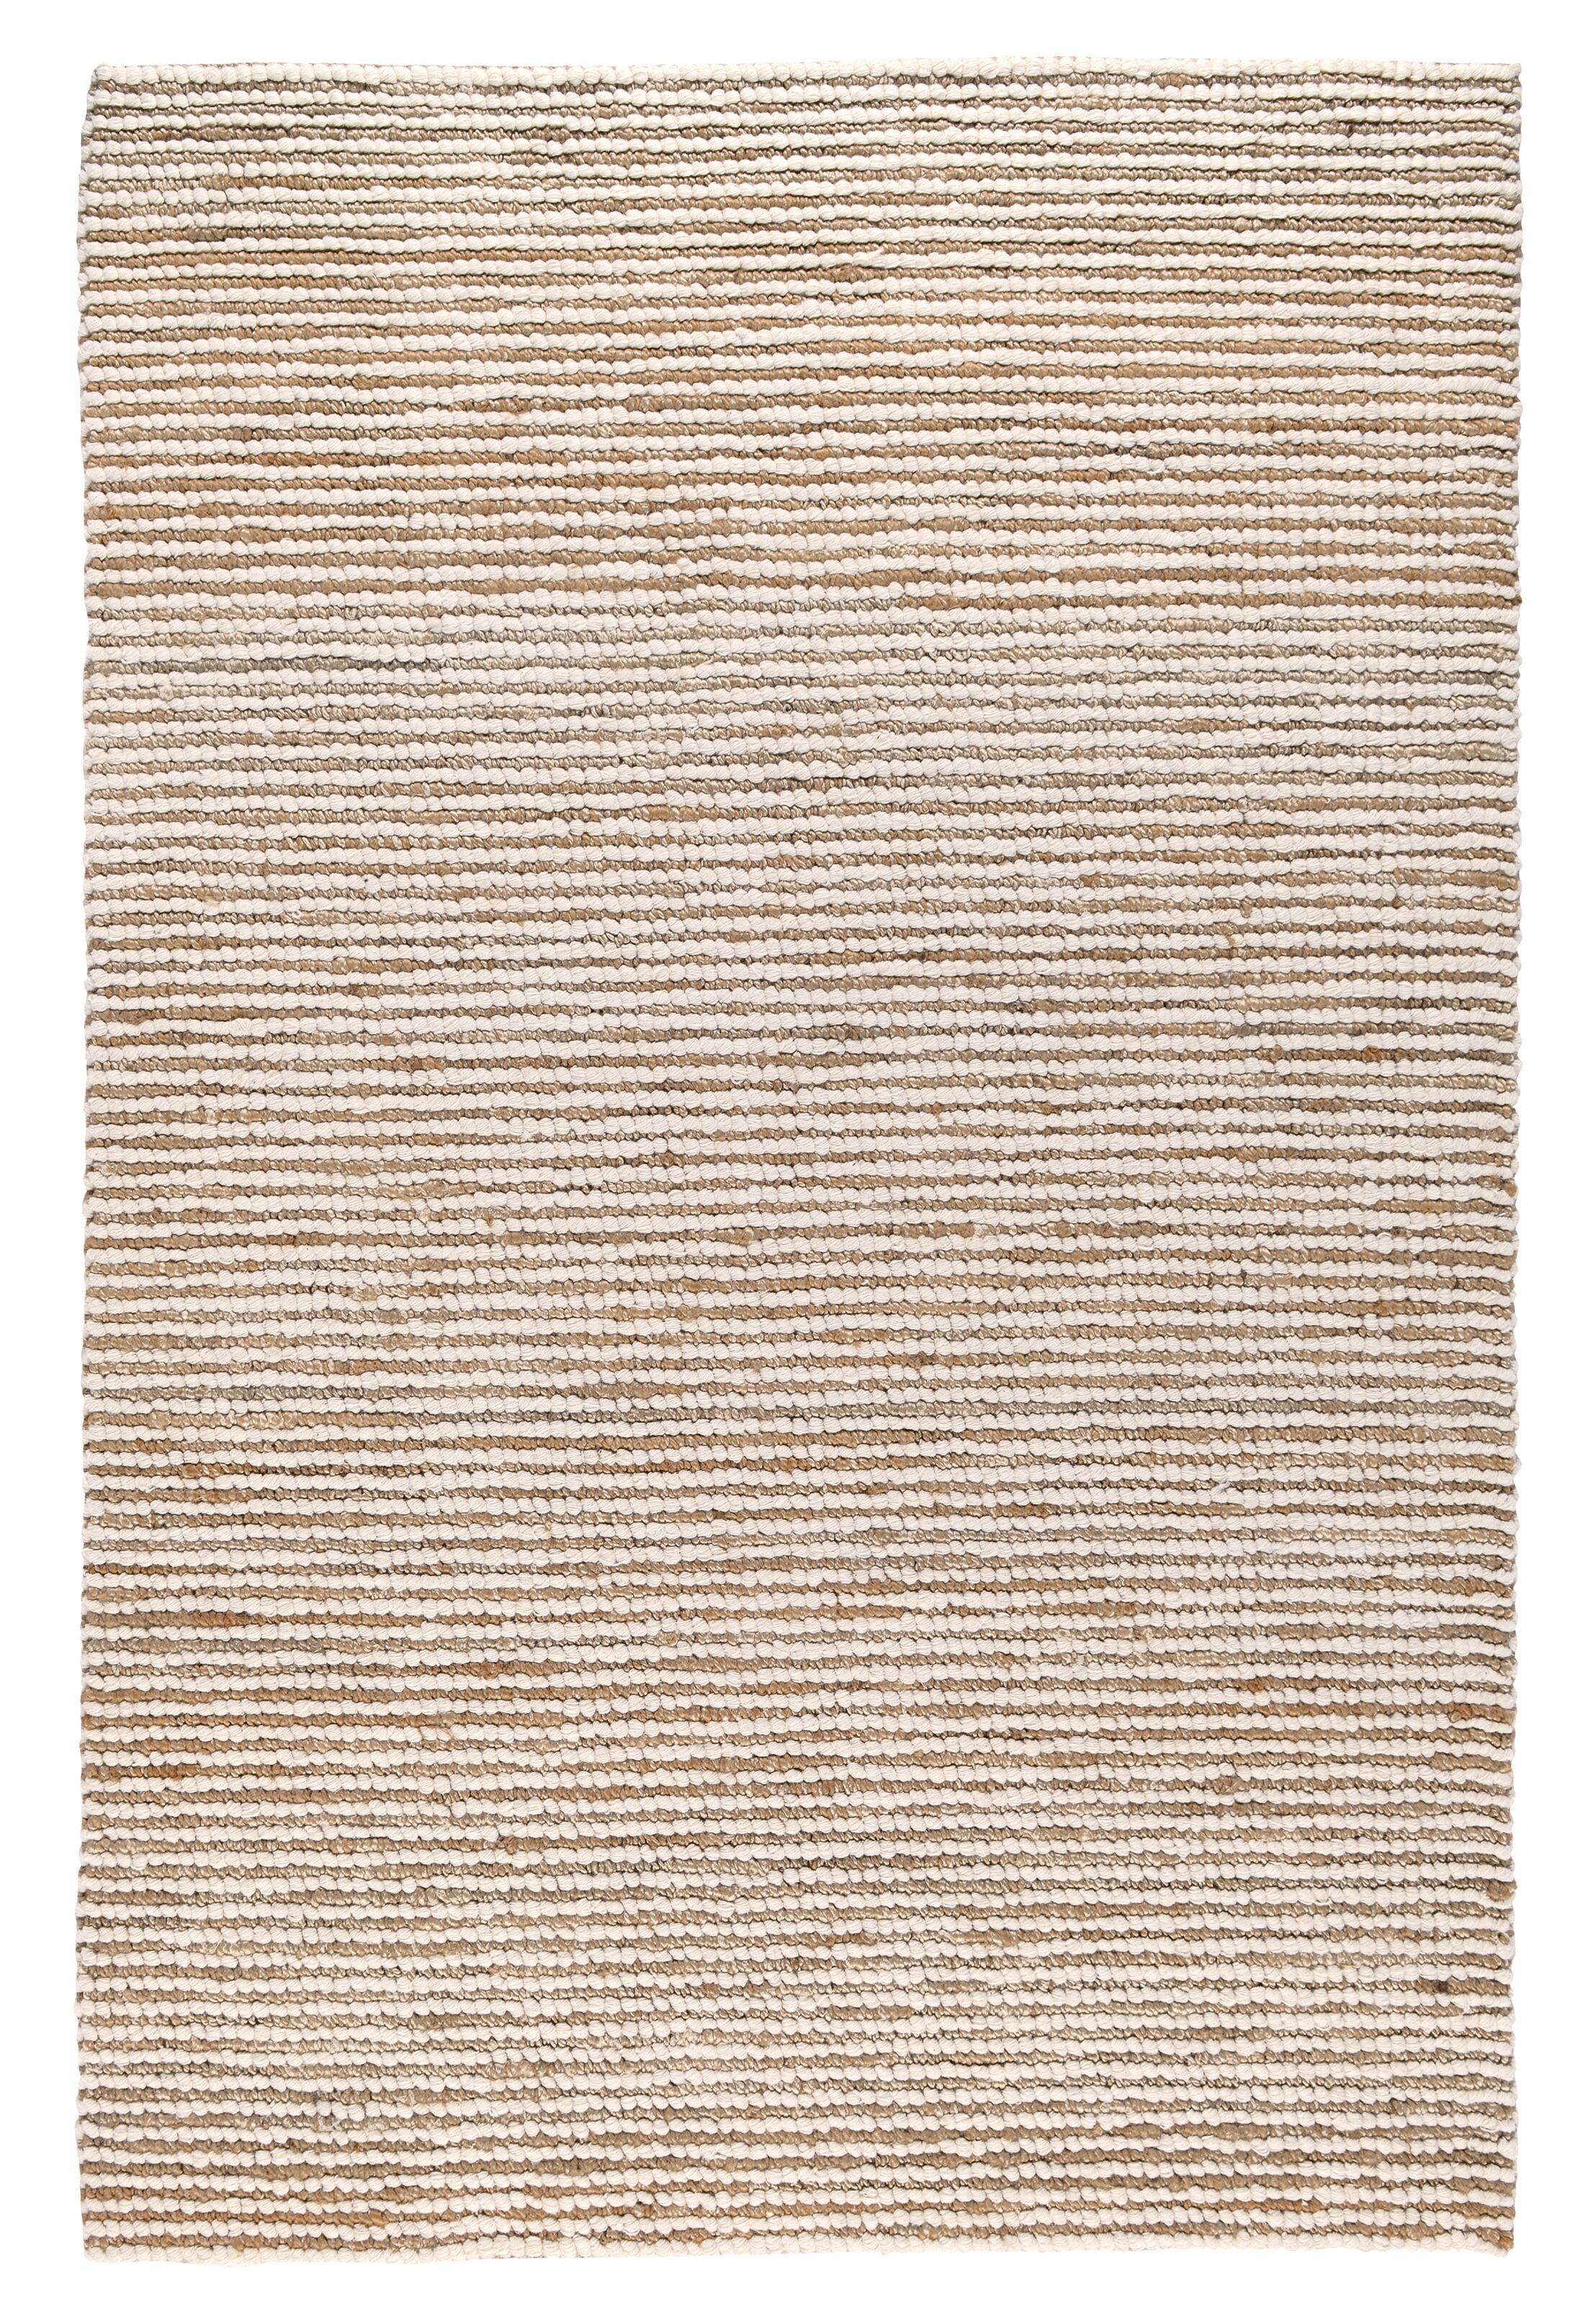 Kiti Hand-Woven Ivory/Natural Area Rug Rug Size: 5' x 8'